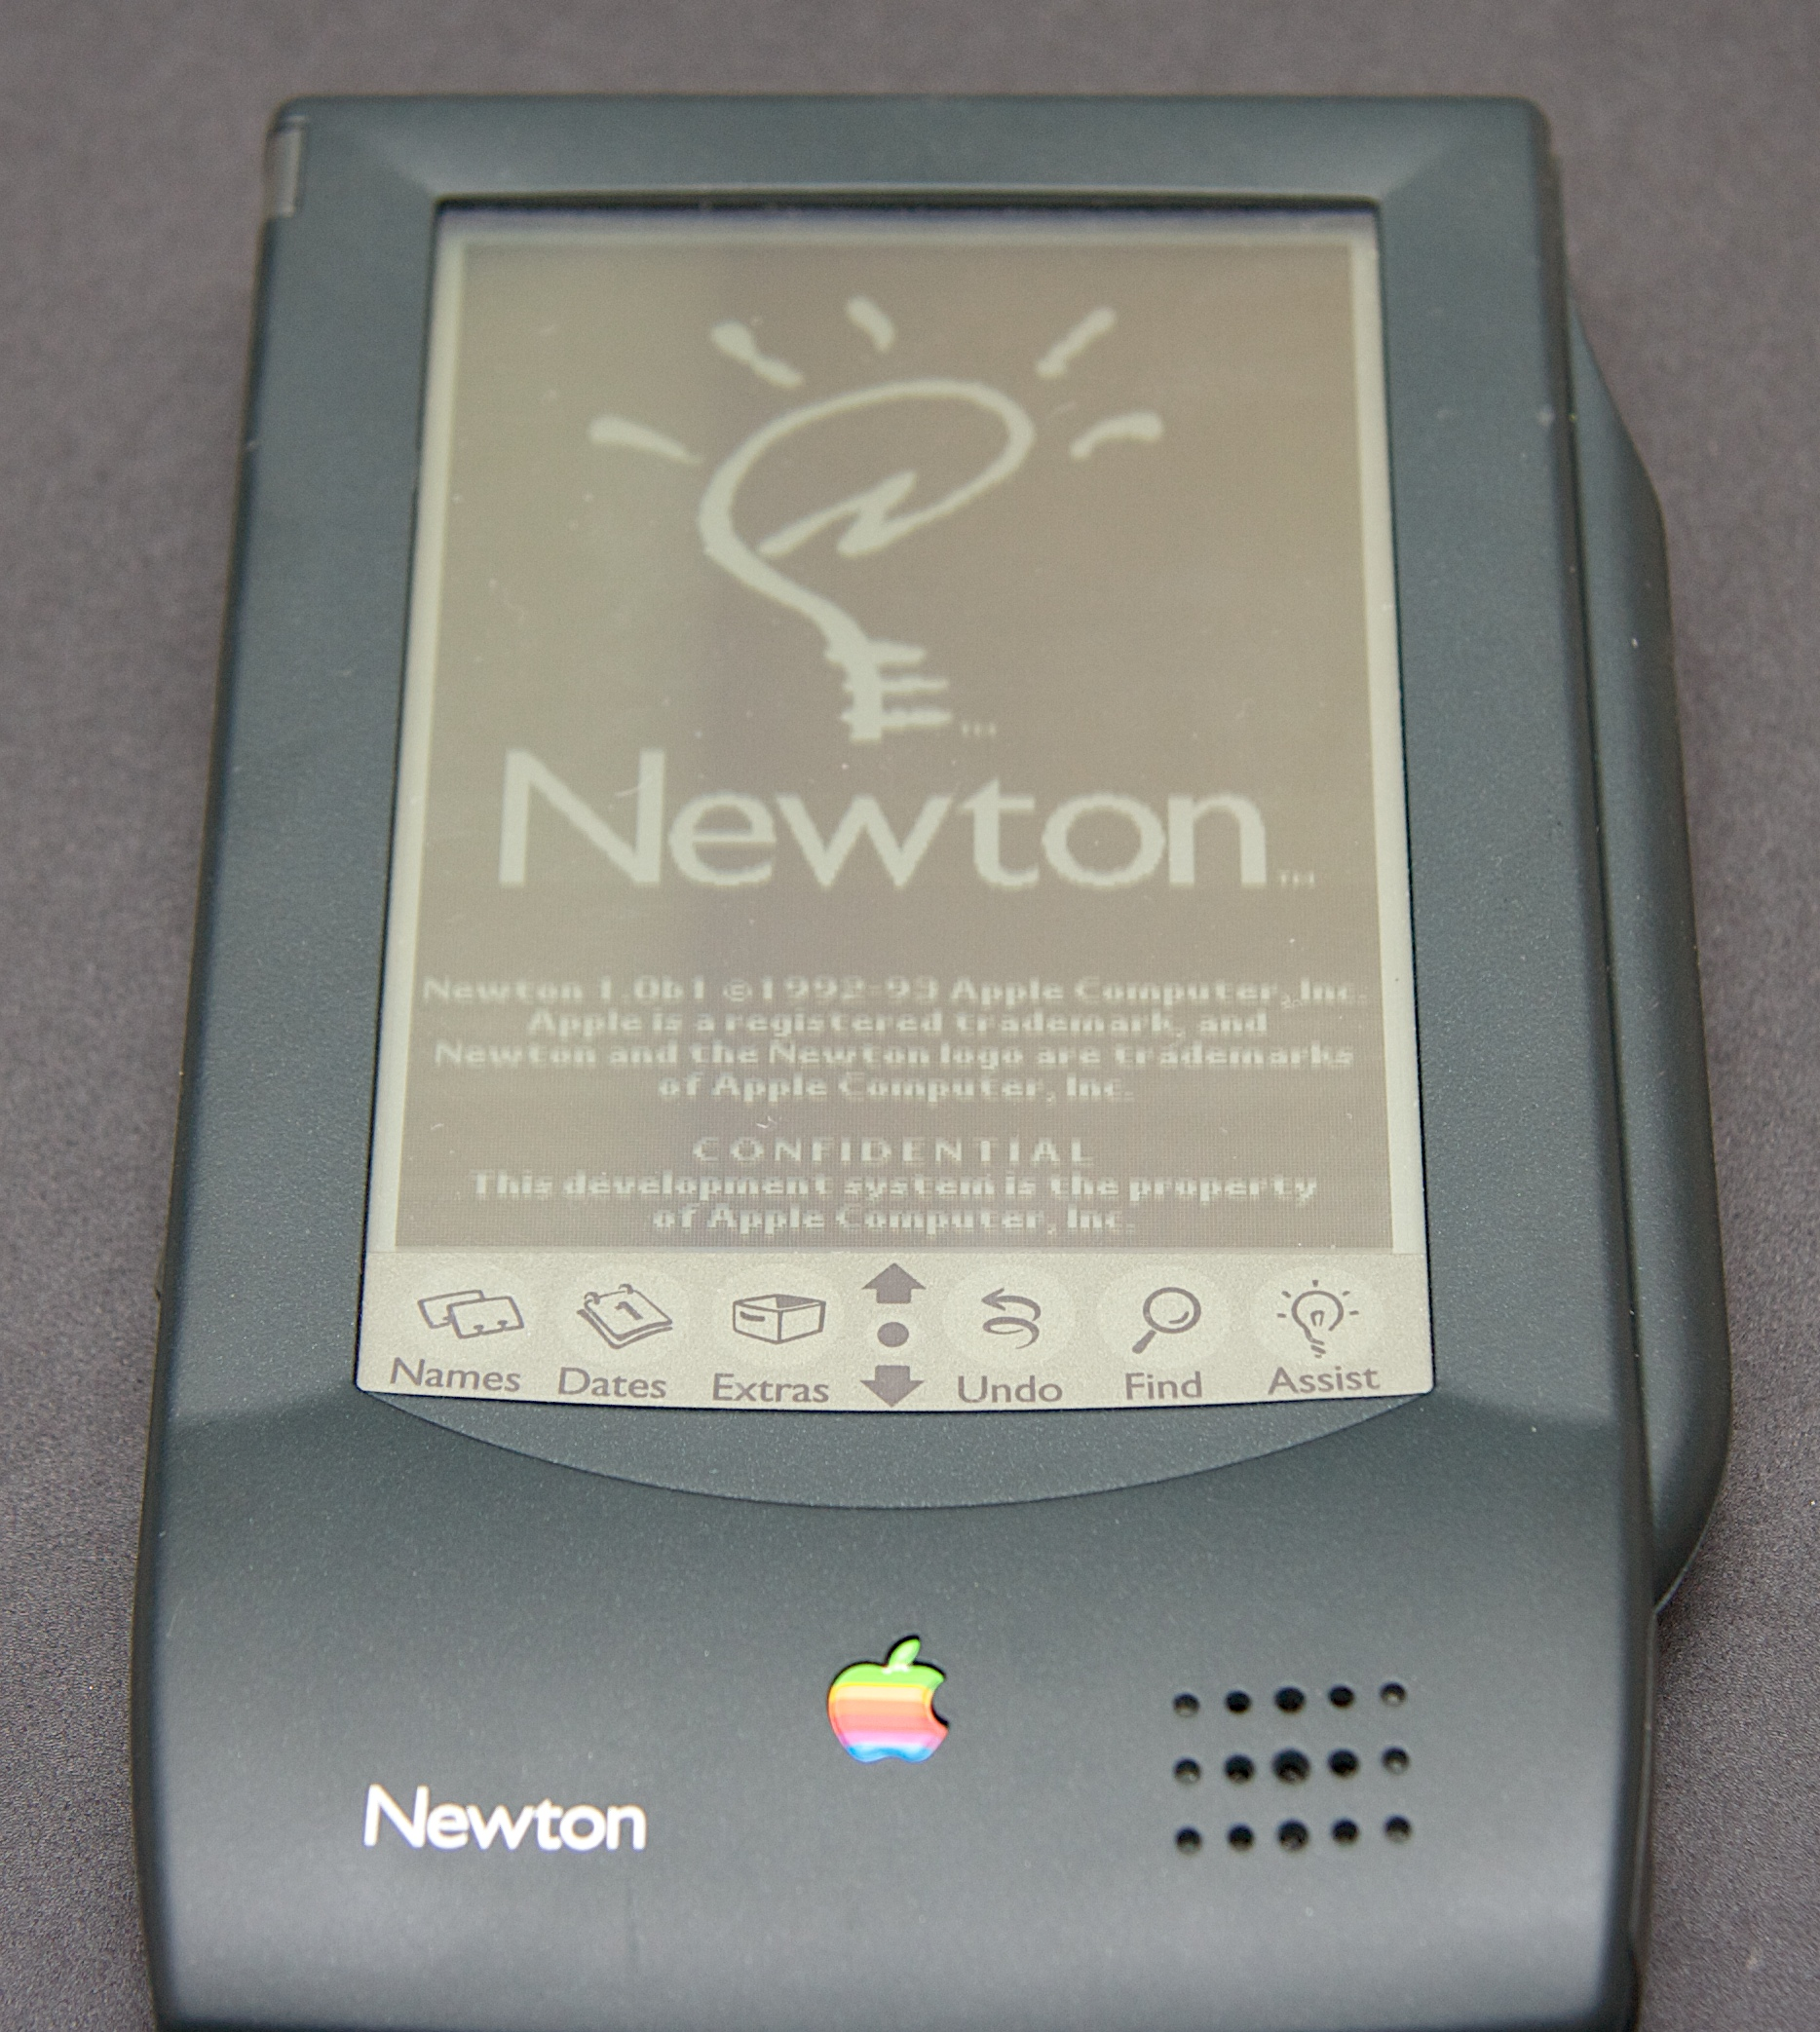 https://i1.wp.com/popularlogistics.com/wp-content/uploads/2010/08/apple-newton-power-on.jpg